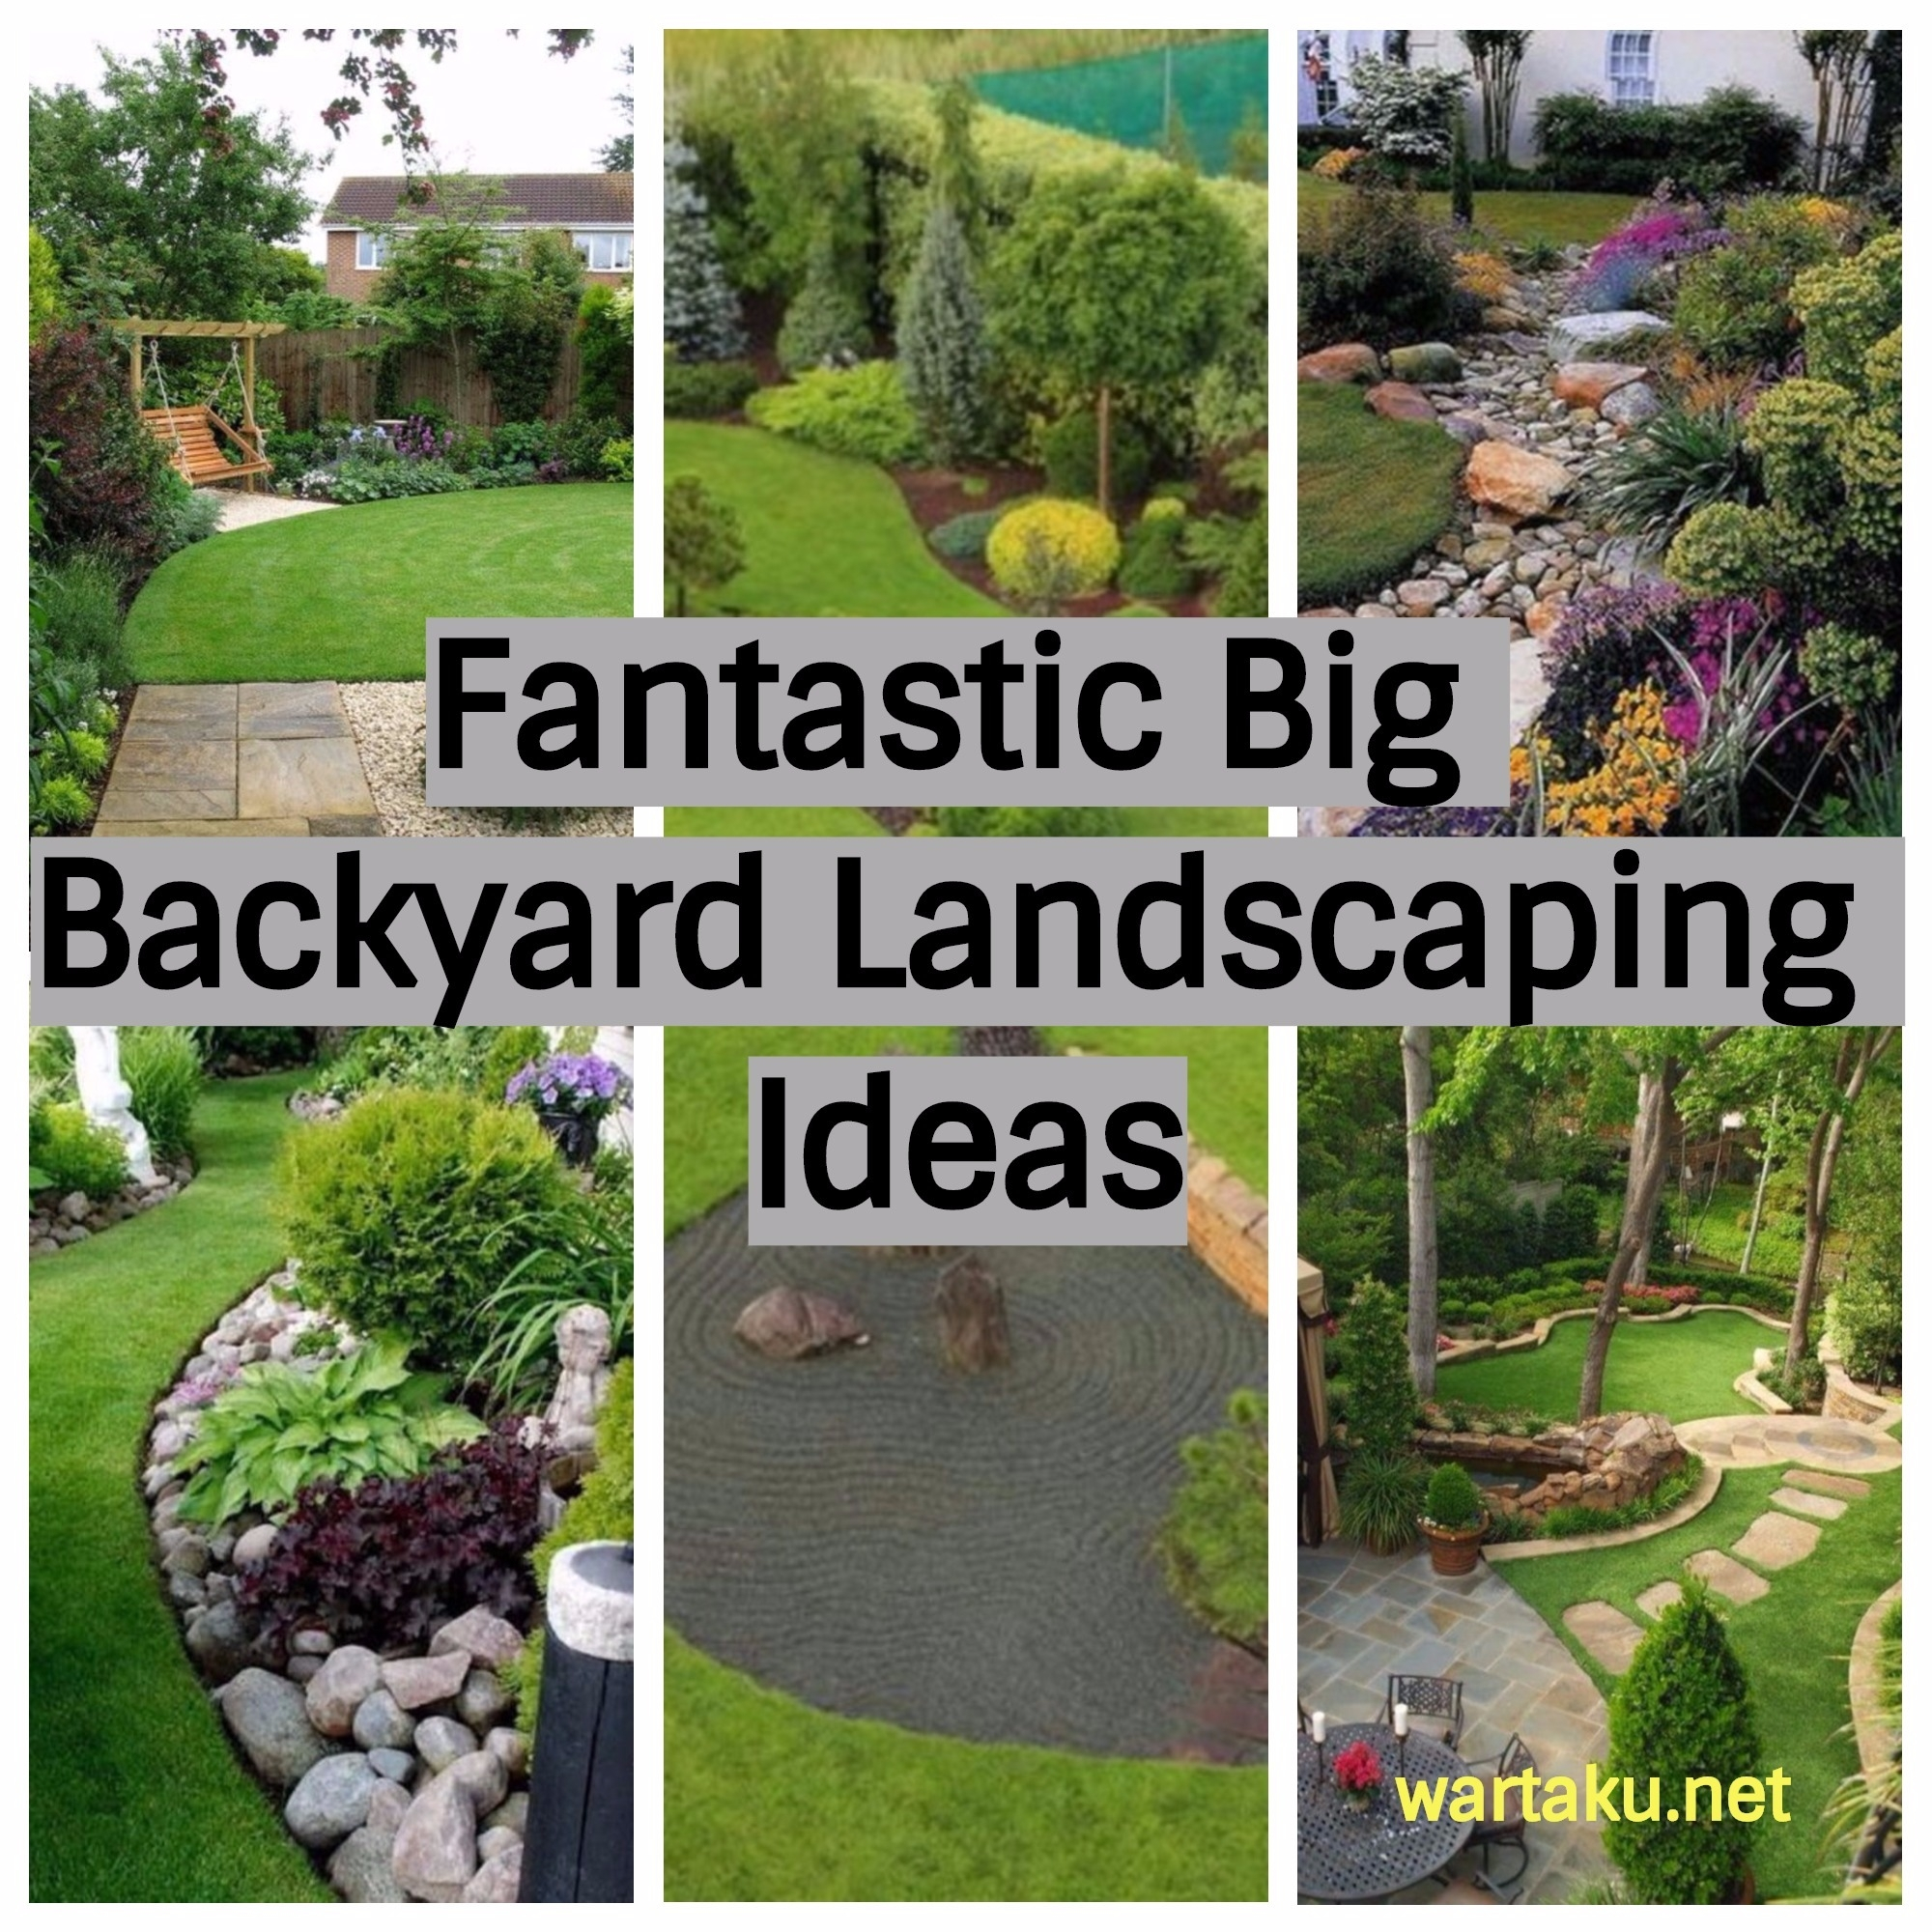 17 fantastic big backyard landscaping ideas wartaku